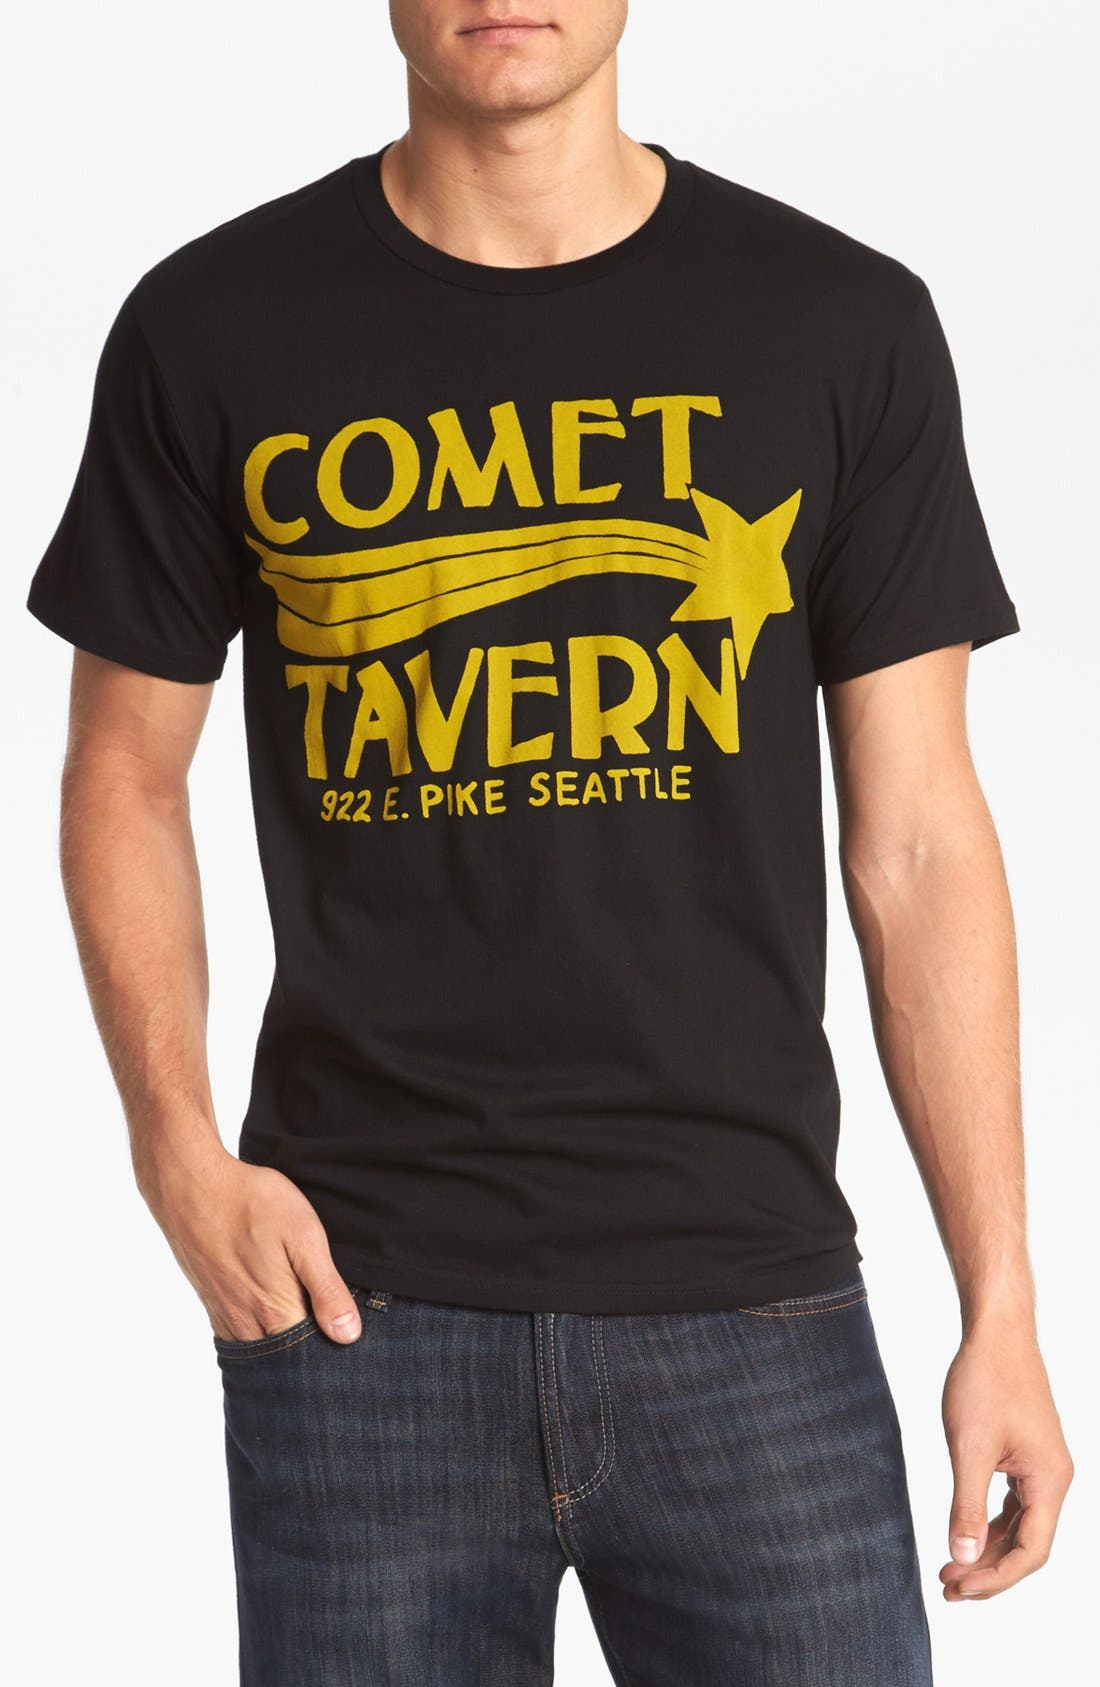 Alternate Image 1 Selected - Horses Cut Shop 'Comet Tavern' T-Shirt